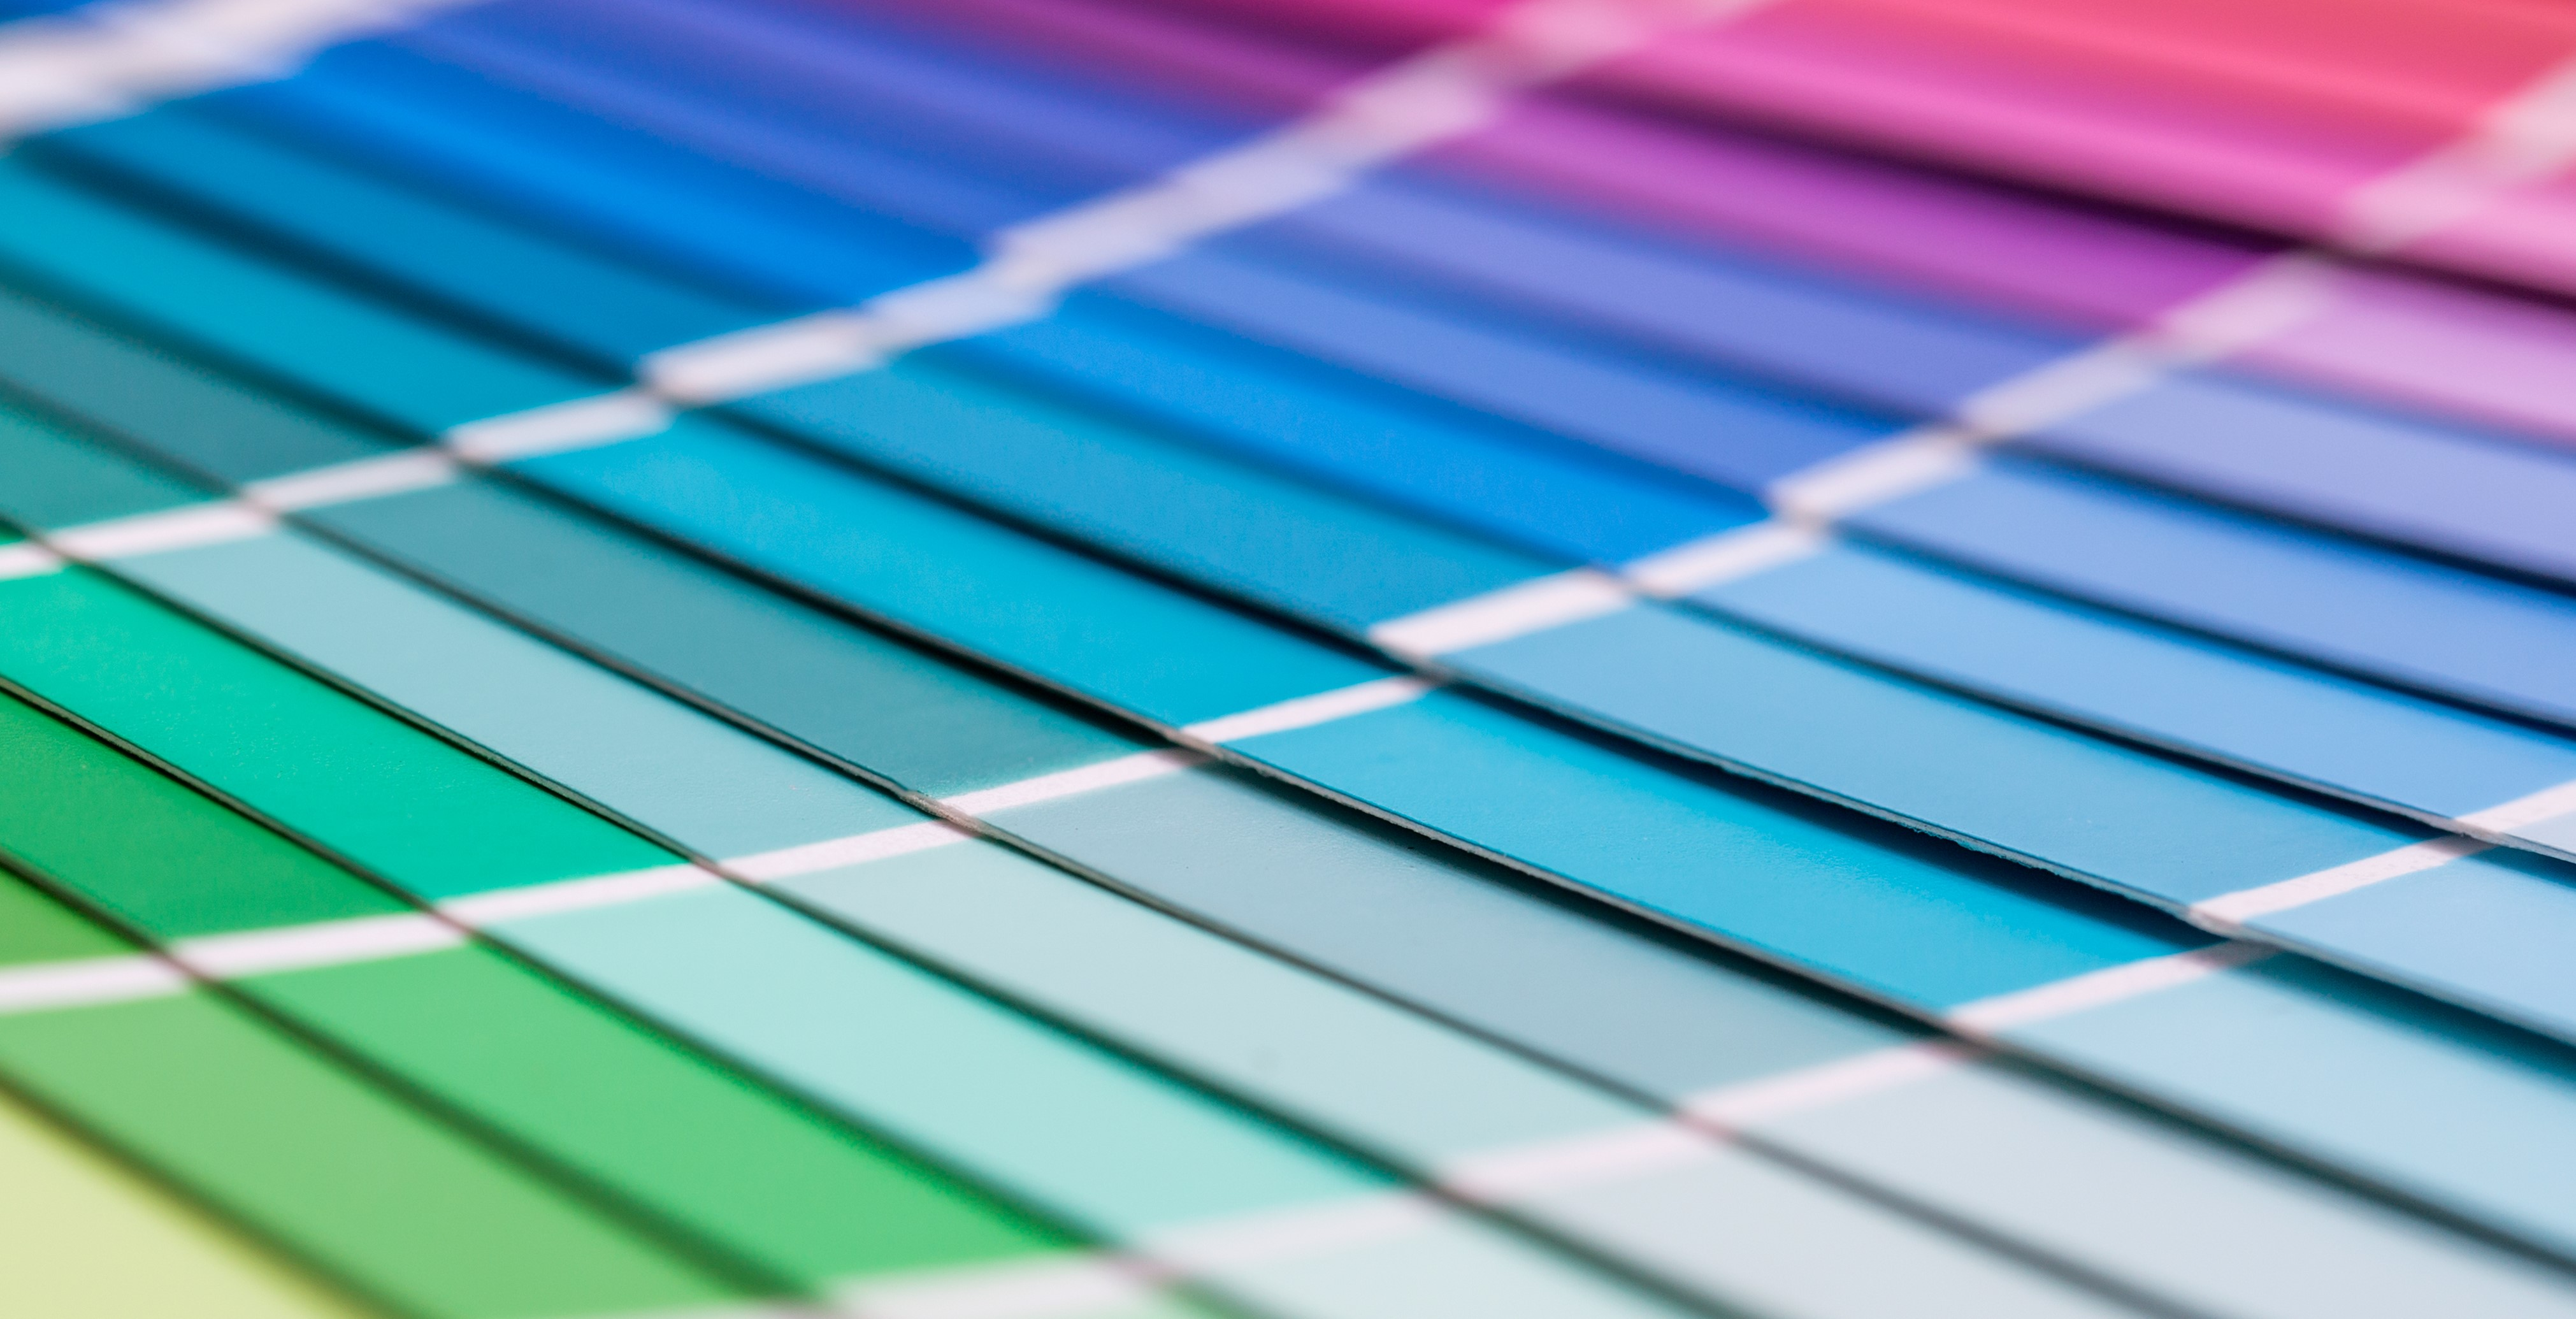 Pantone and X-Rite color matching software textile industry